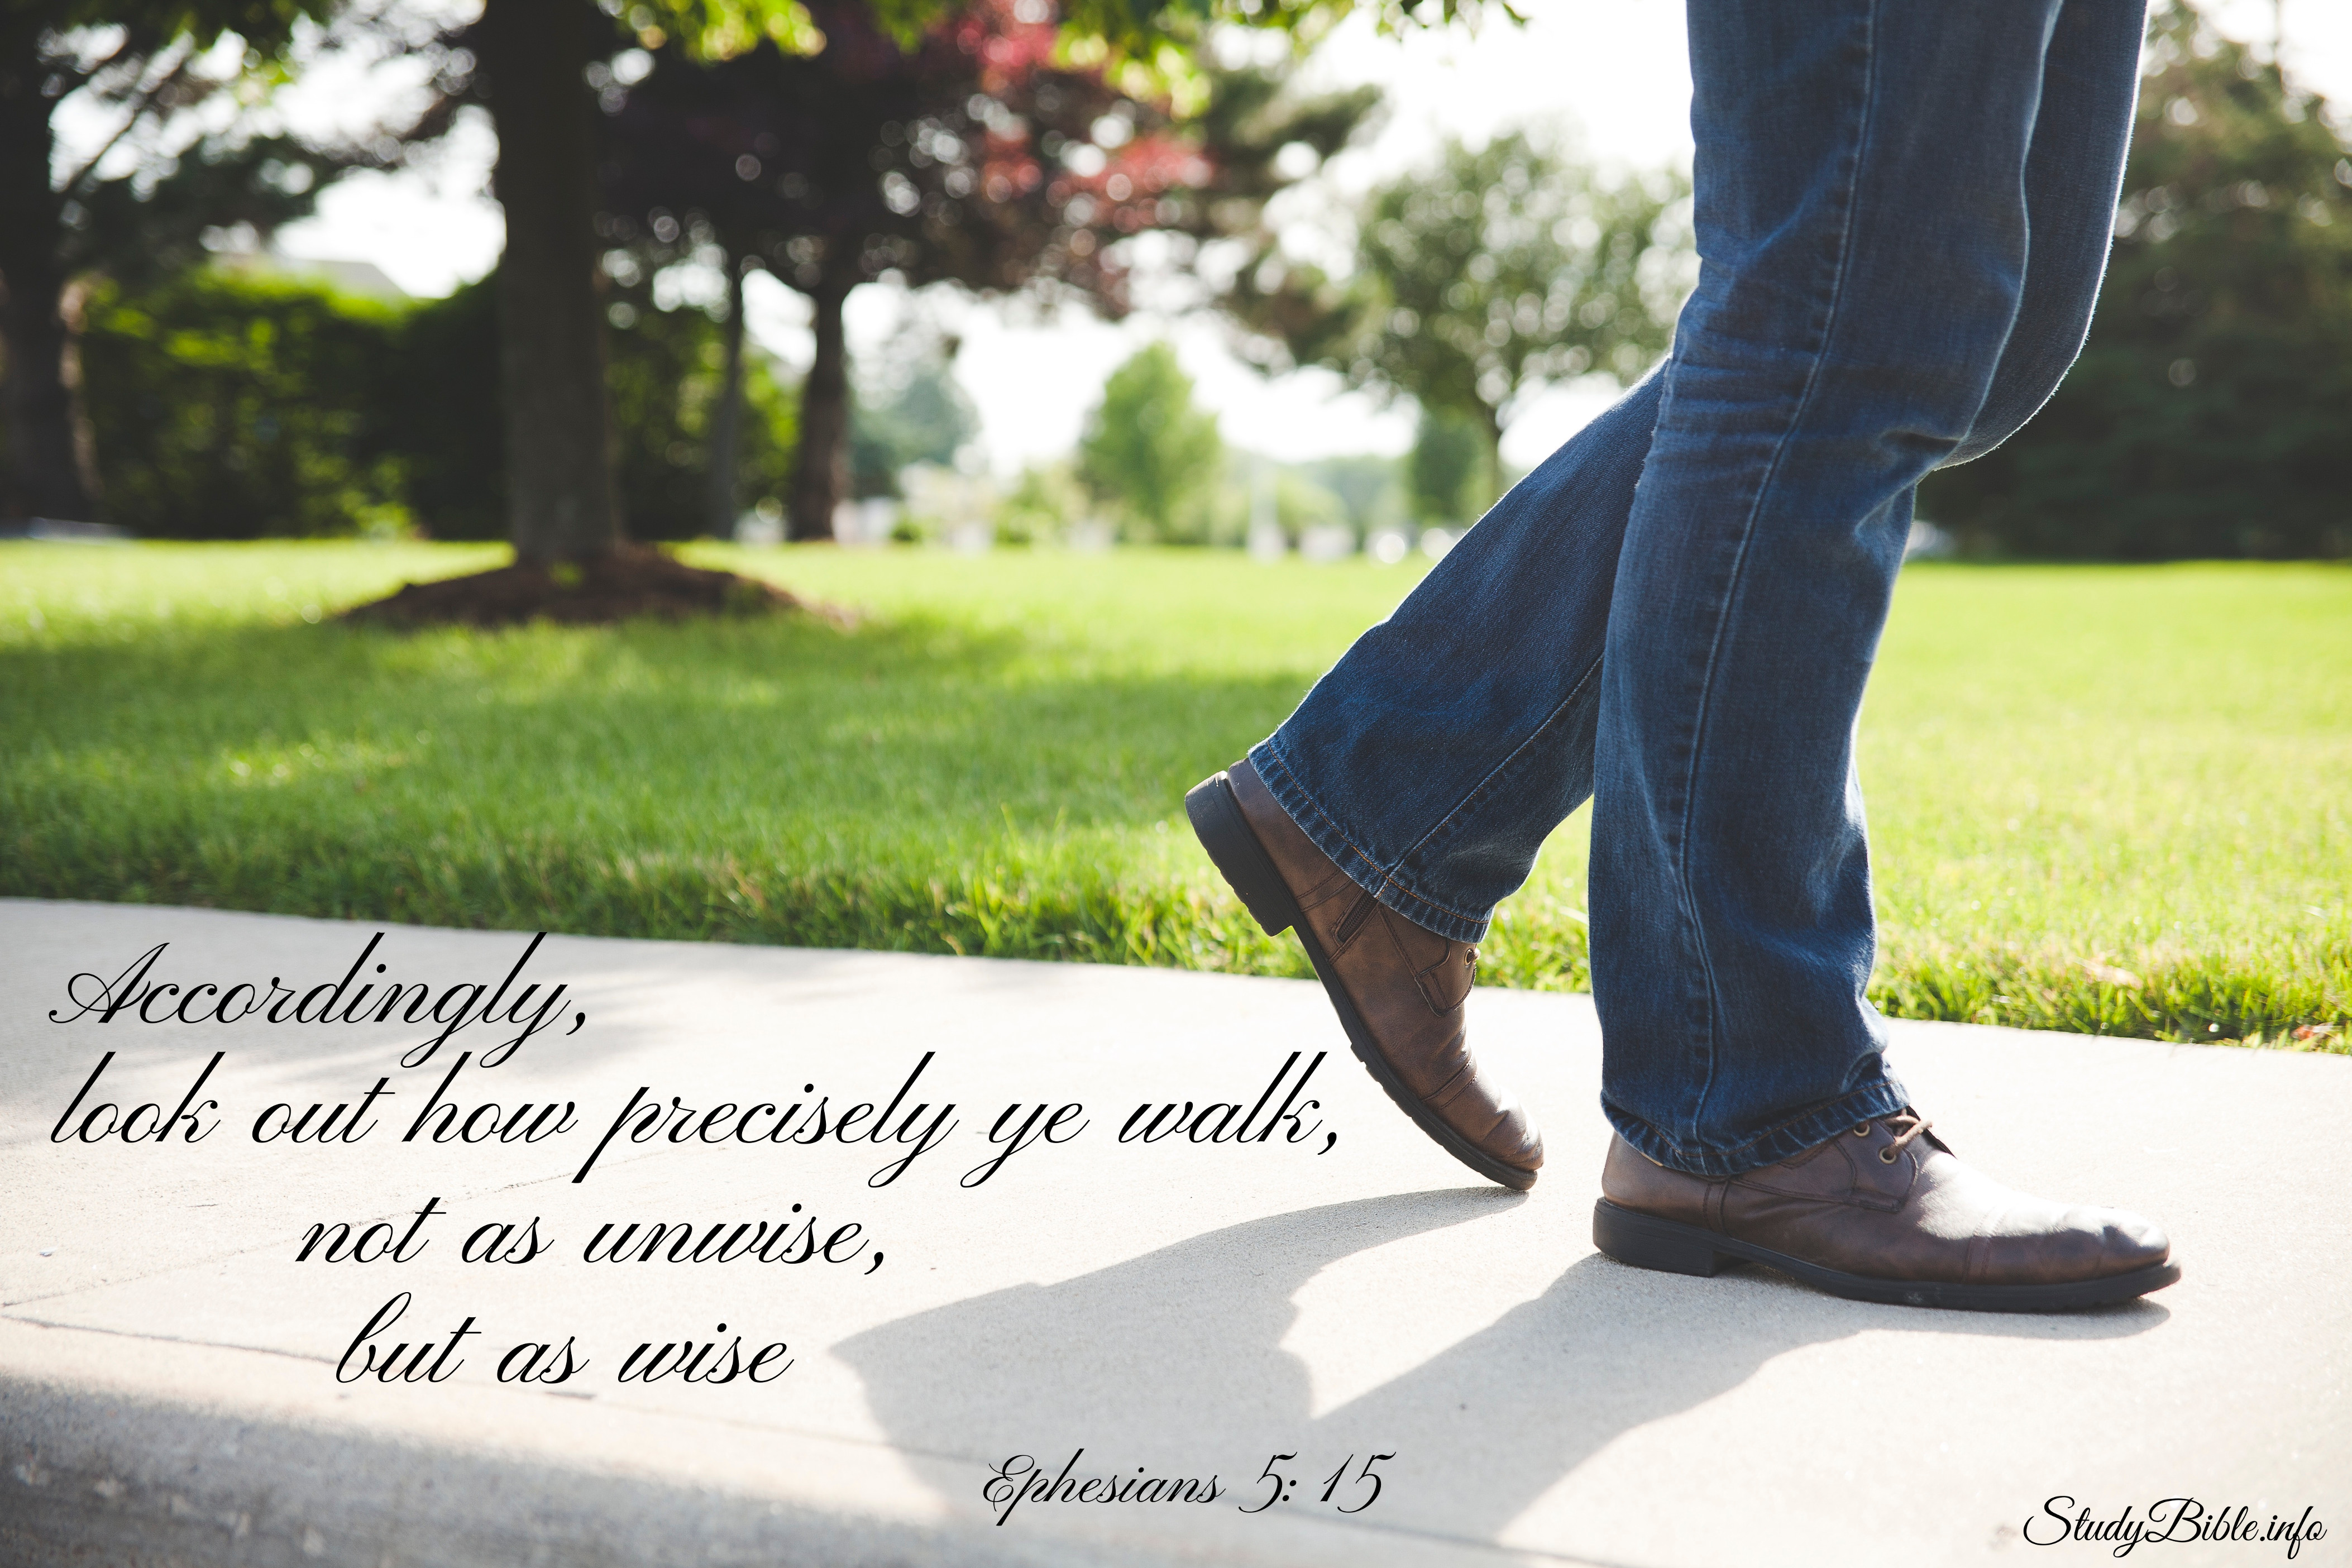 Accordingly , look out how precisely ye walk , not as unwise , but as wise Ephesians 5:15